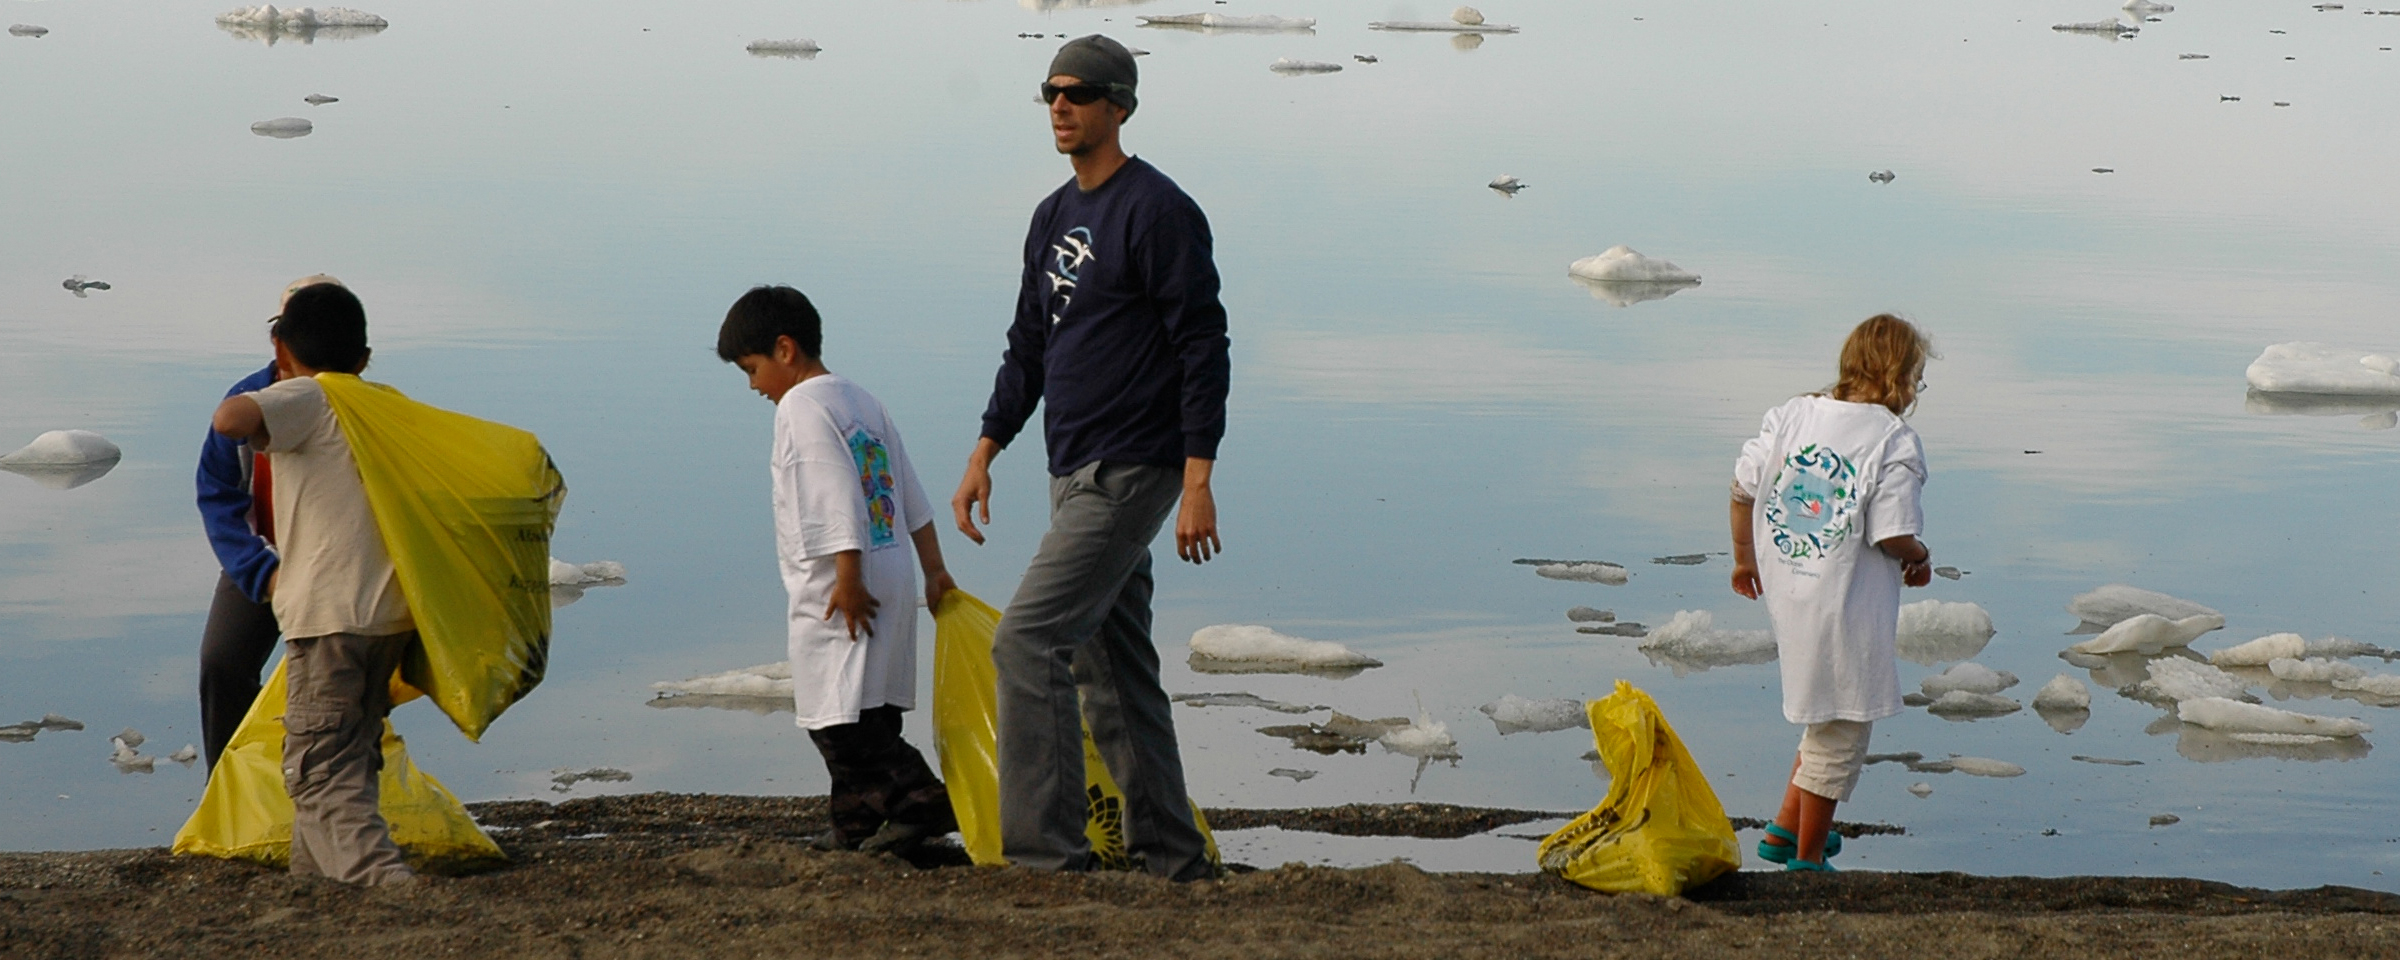 Beach clean up in Barrow. Photo by Elizabeth Eubanks, courtesy of ARCUS.